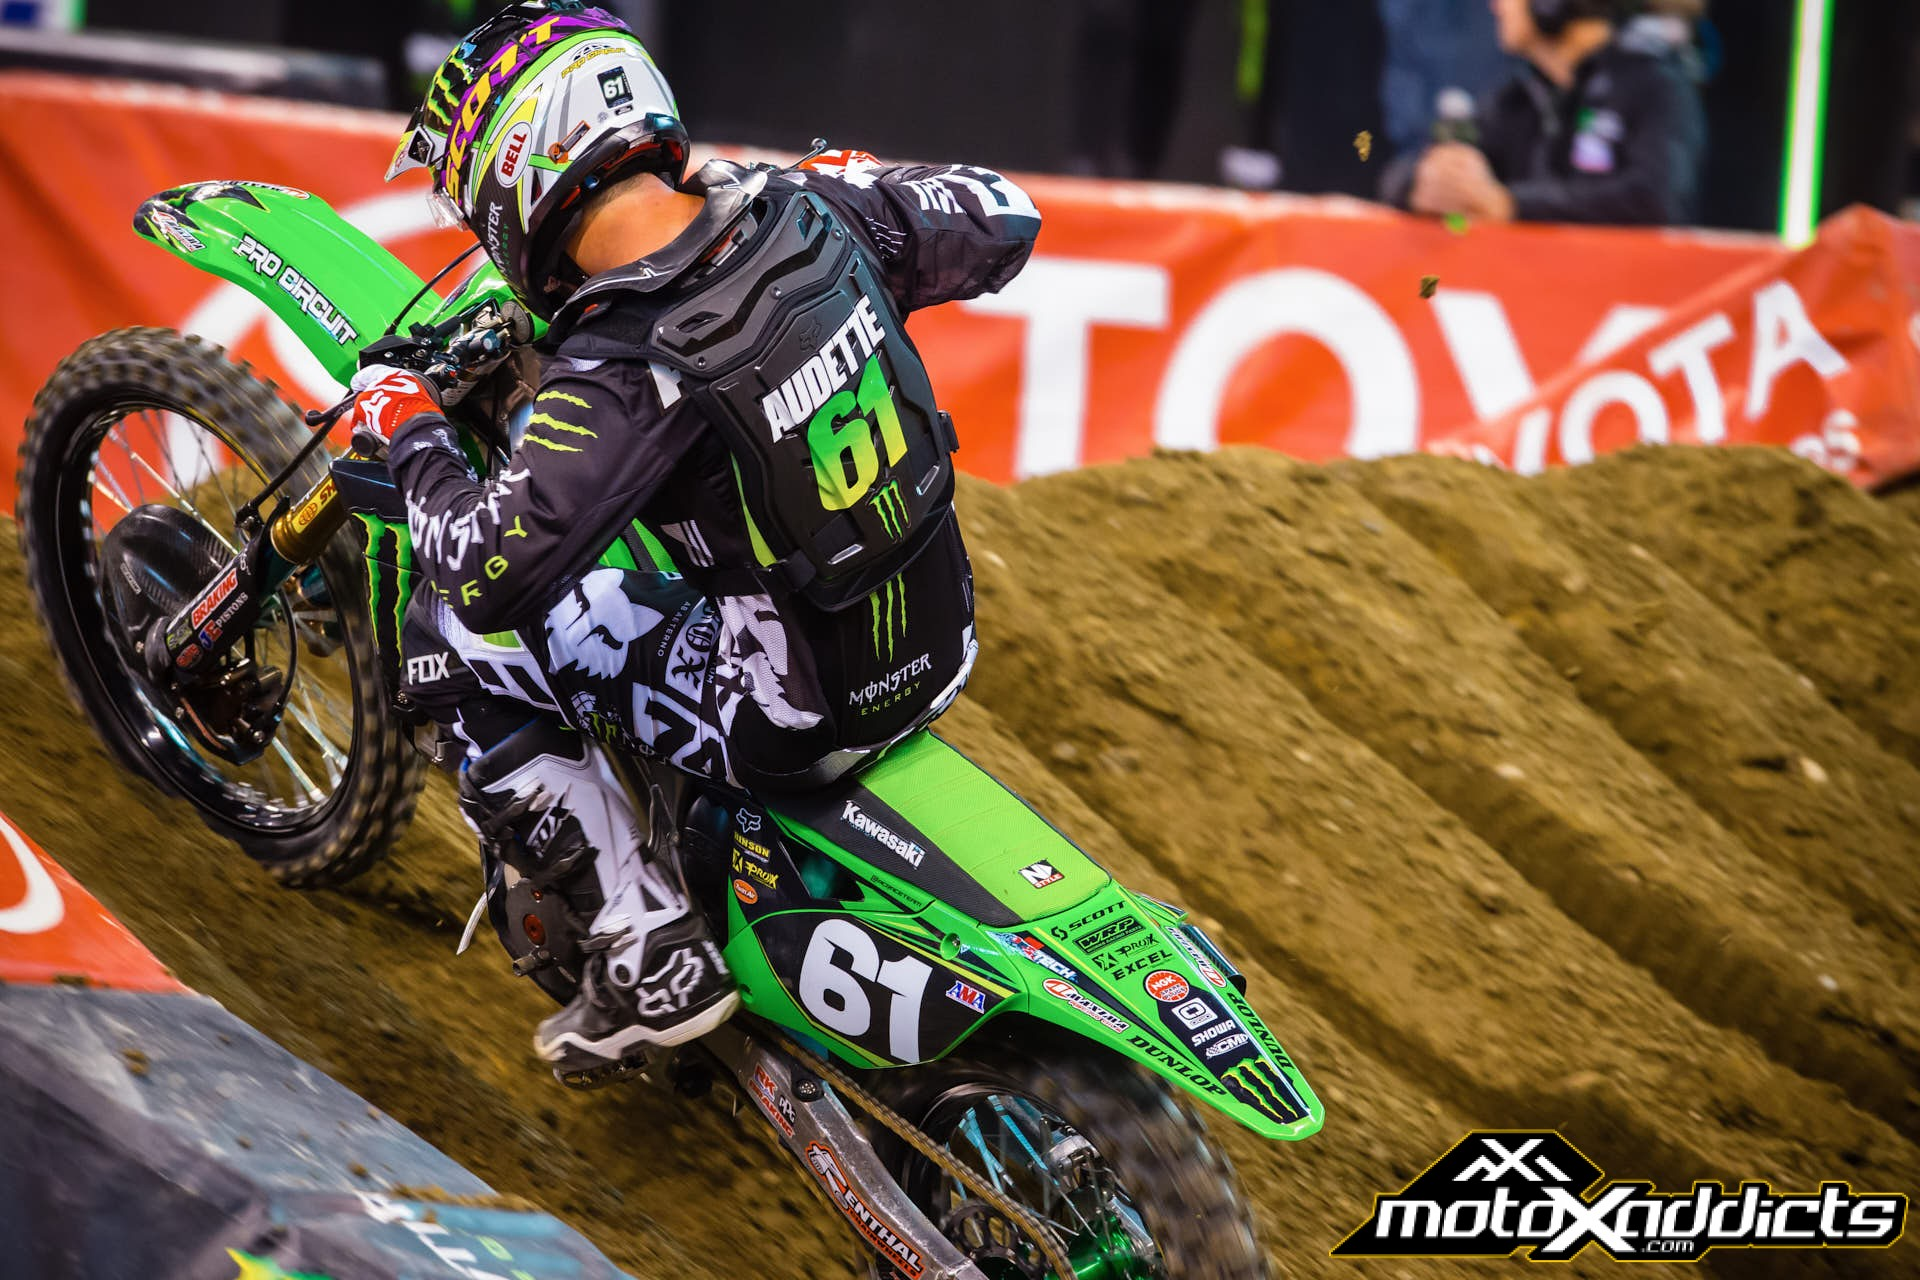 Gannon Audette (filling in at Pro Circuit for the injured Arnaud Tonus) was only the 7th fastest 250SX rider, but consistency netted him his first-ever podium. Photo by: Hoppenworld.